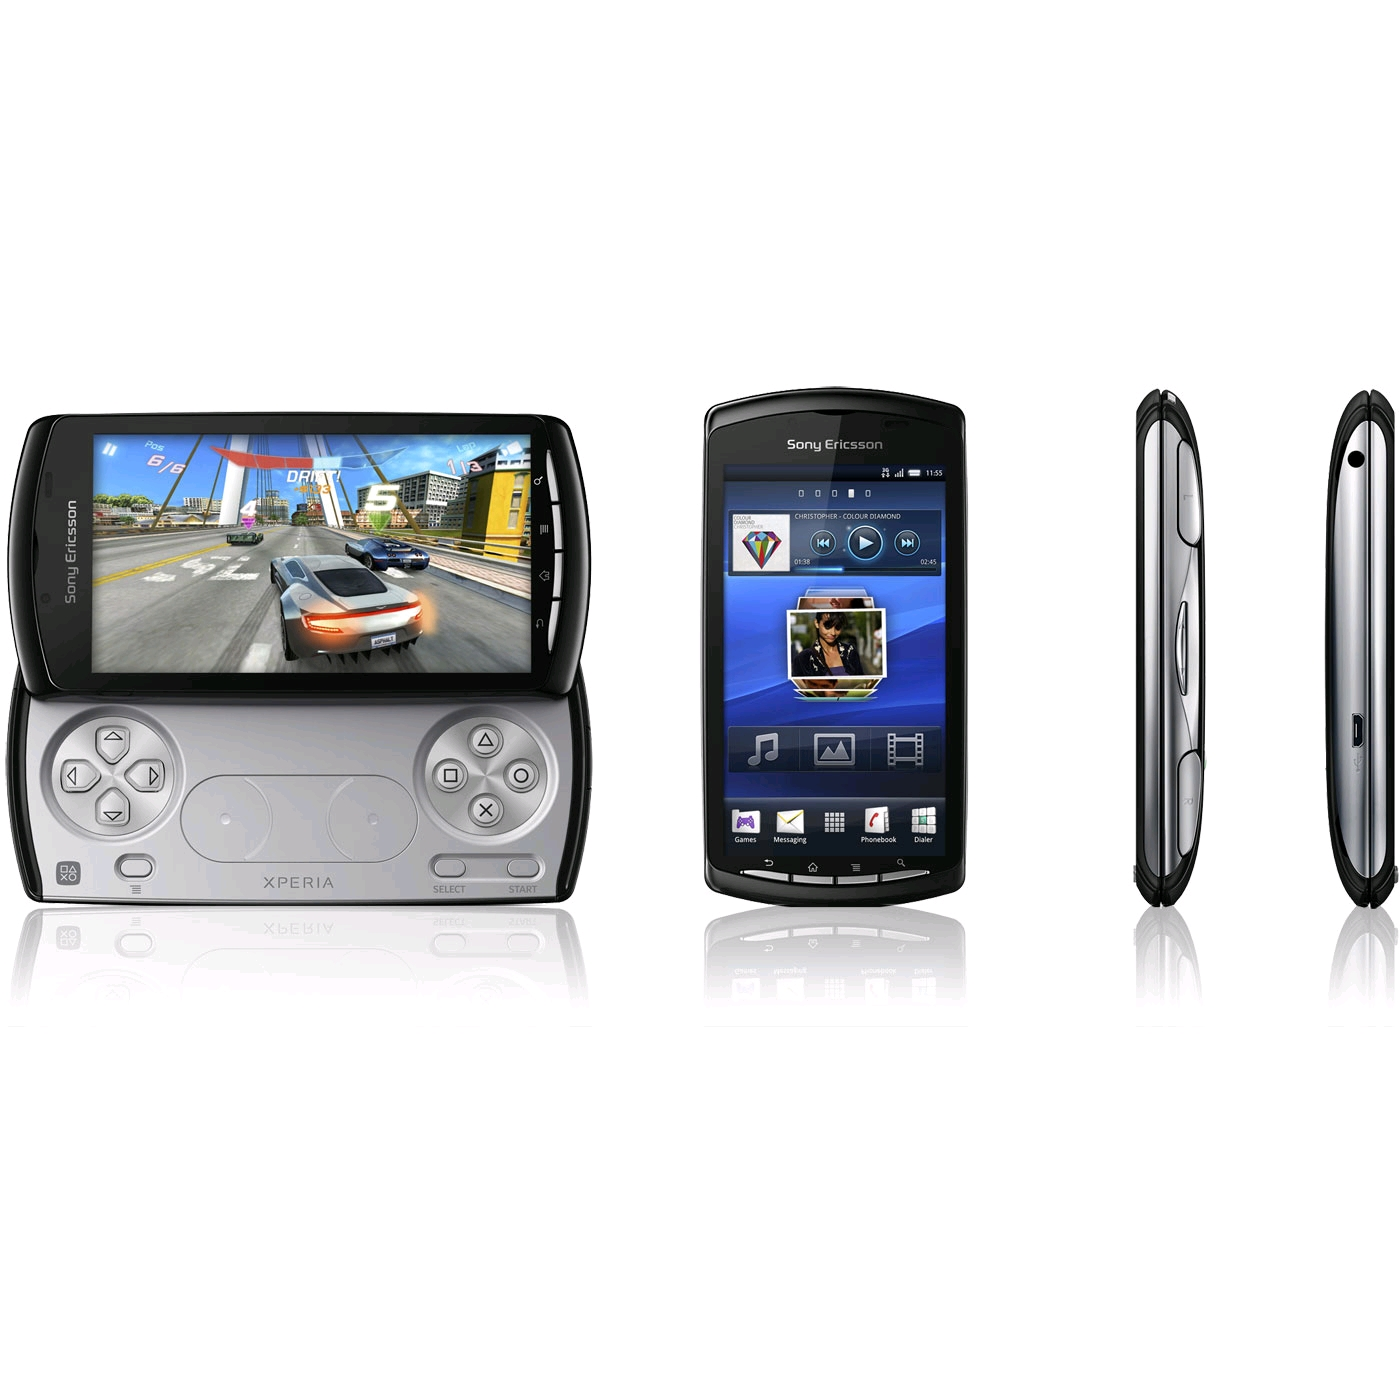 sony ericsson xperia play r800 unlocked black expansys singapore